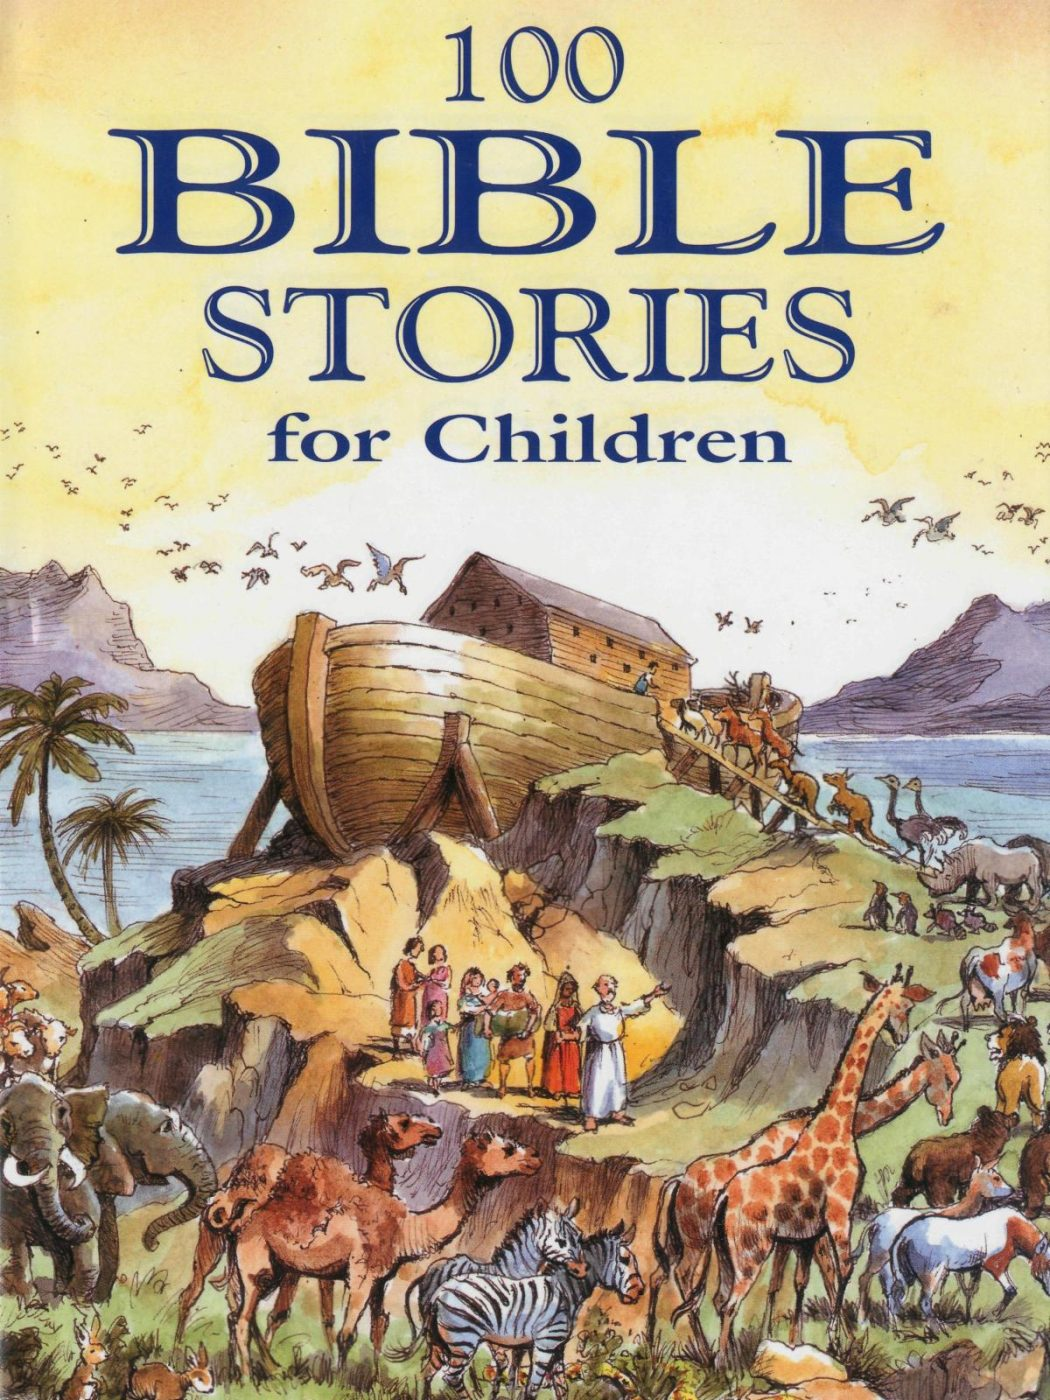 09449_1-award-publications-100-bible-stories-for-children 15 Creative giveaways ideas for kids